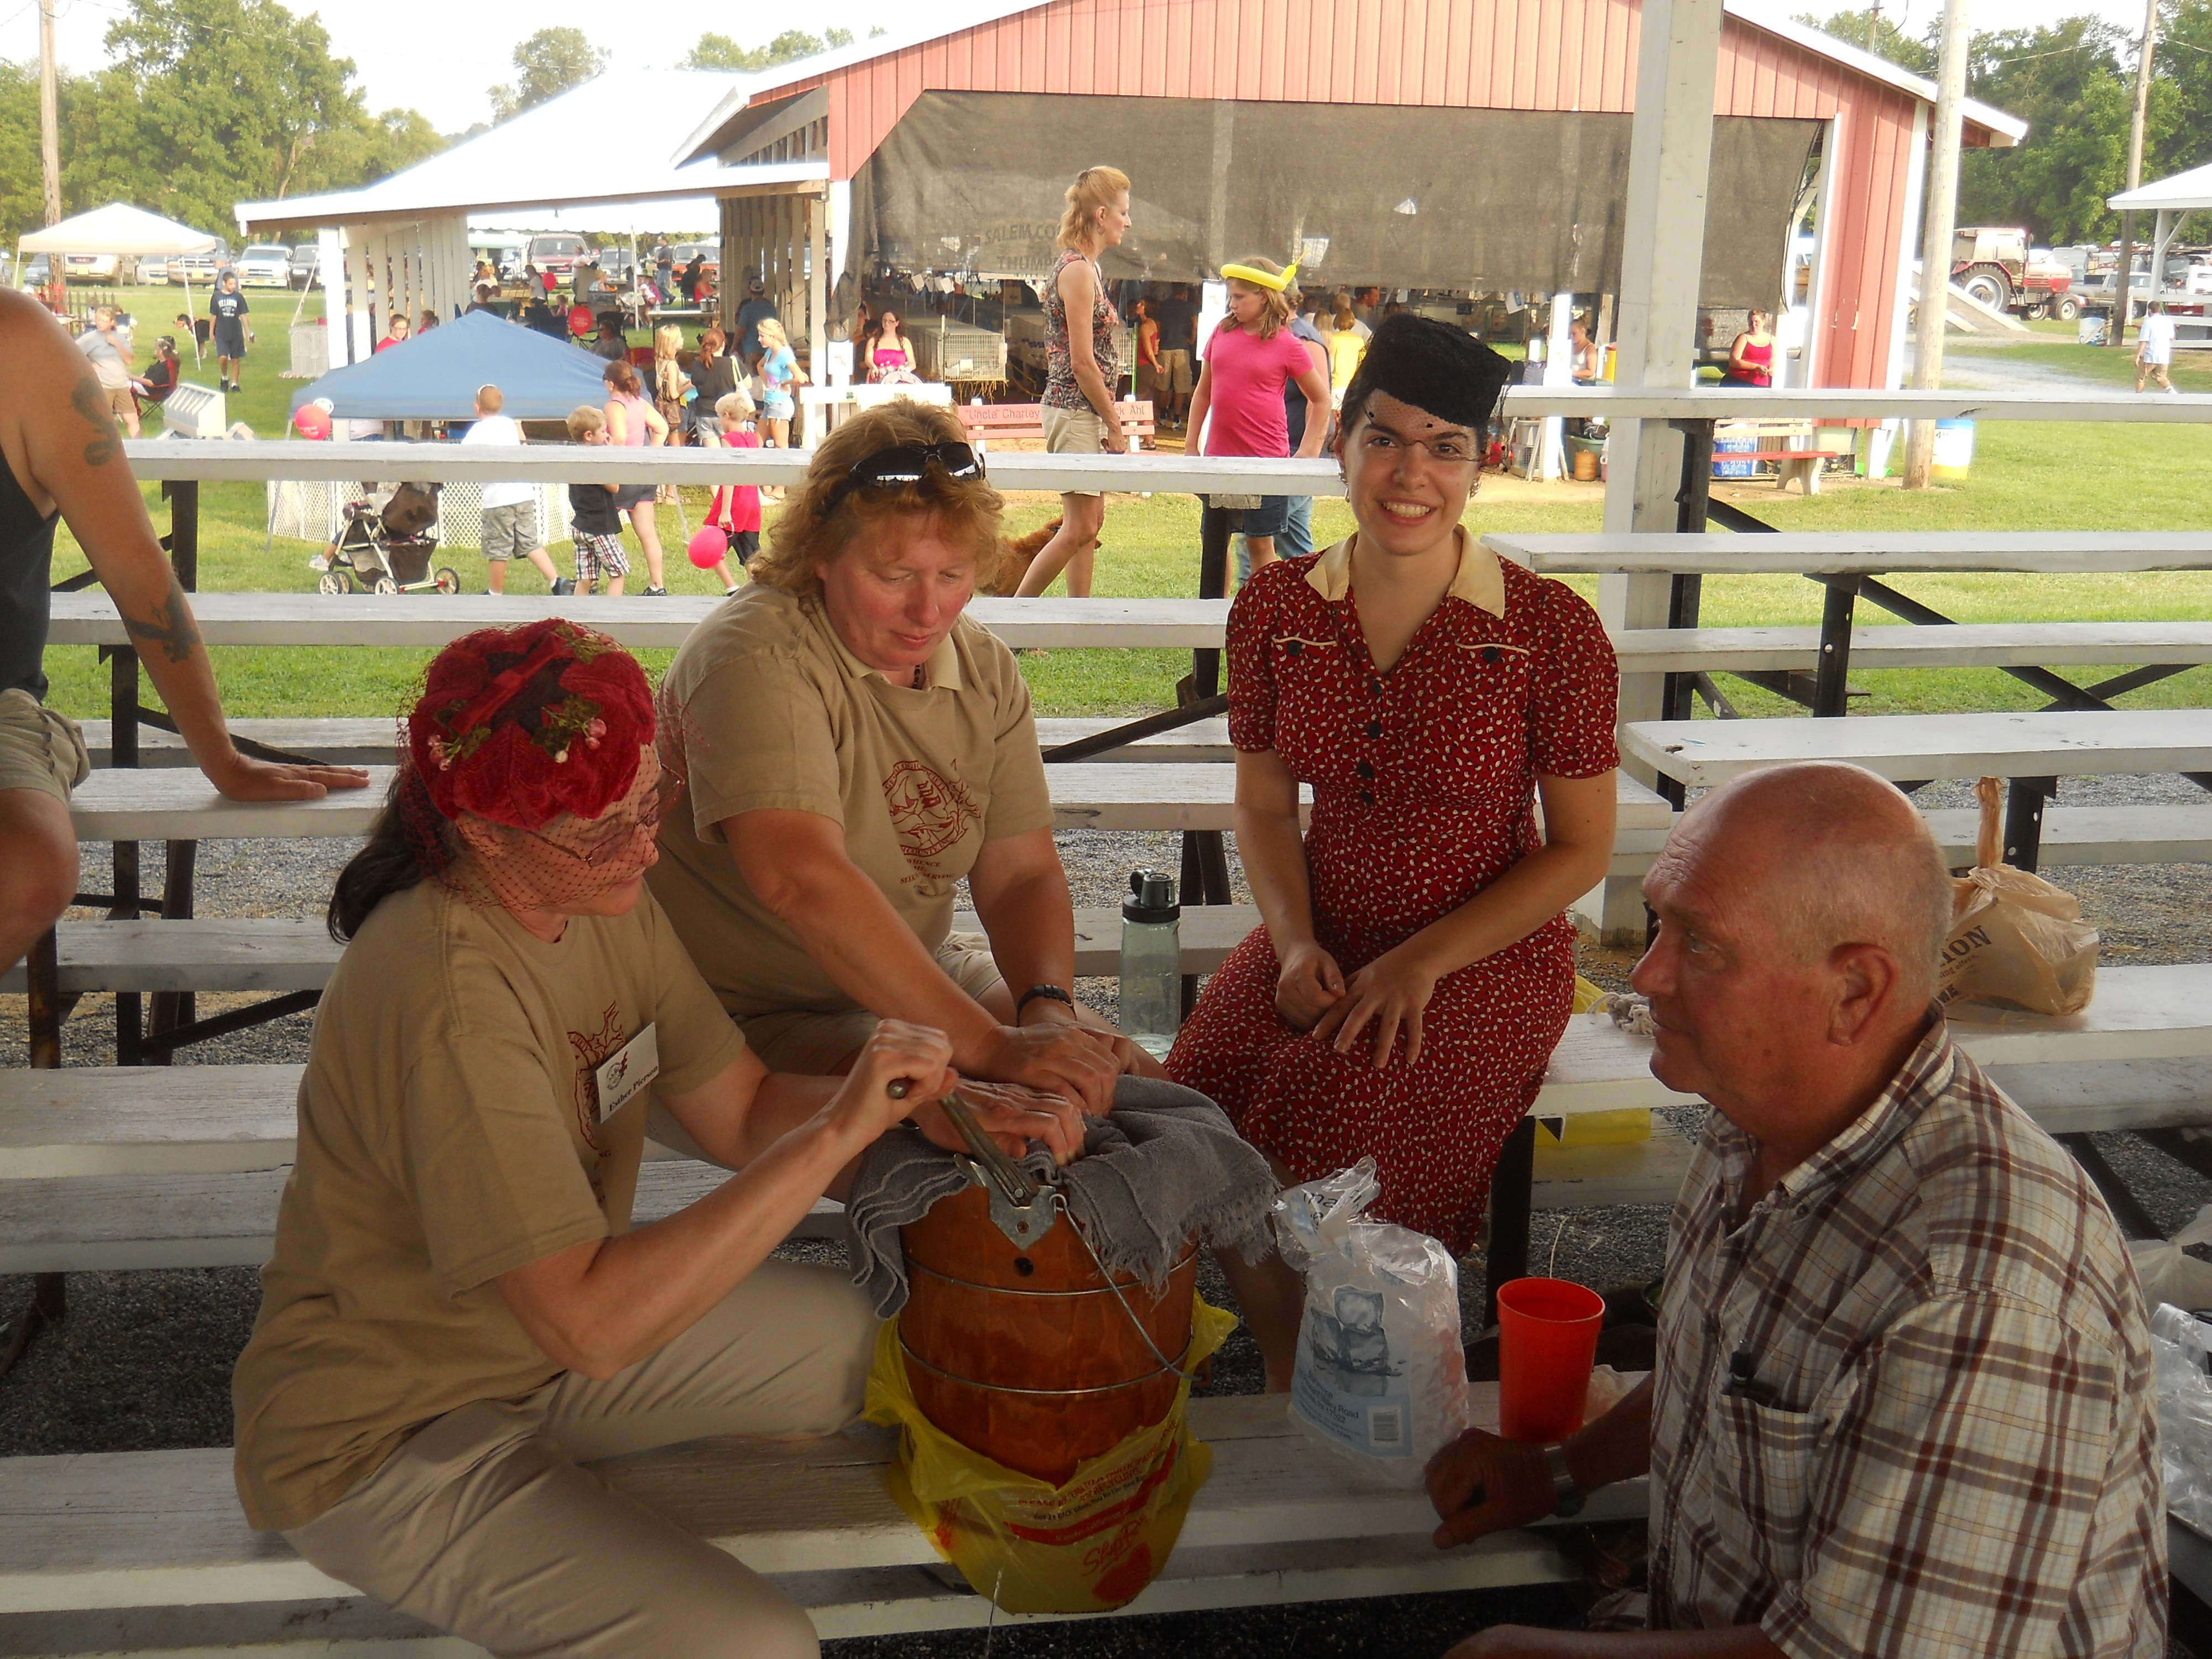 Once again, we participated in the Ice Cream Making contest, with a touch of vintage hats and clothing.